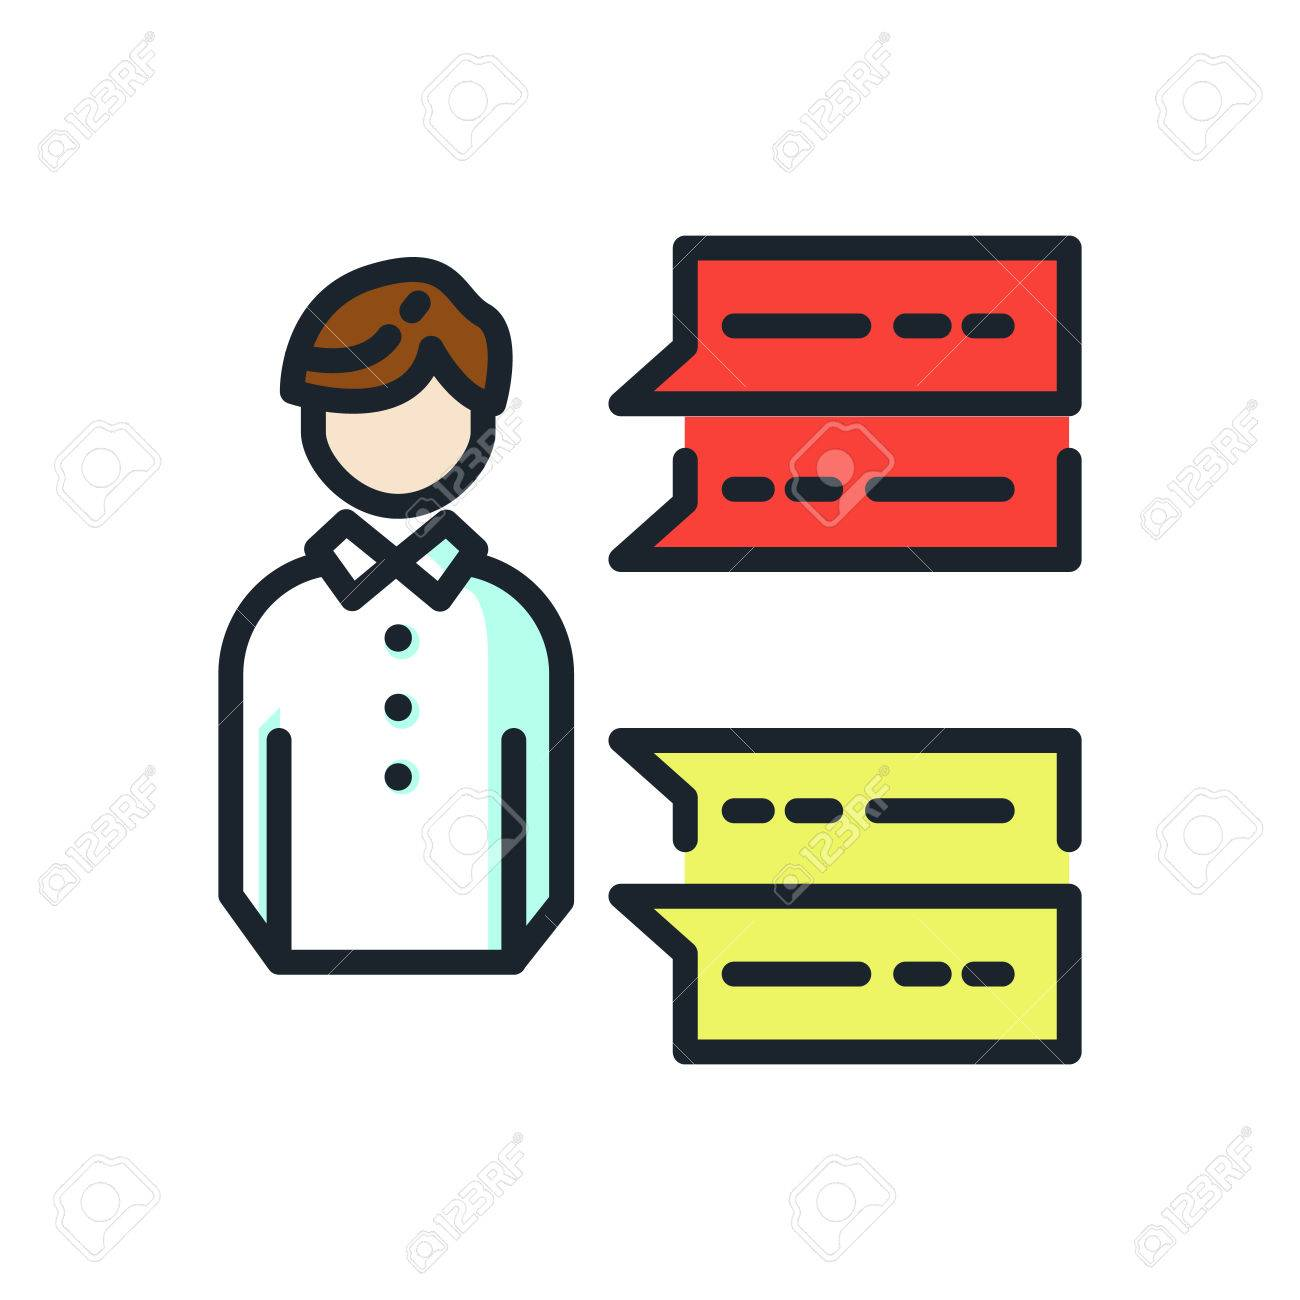 self introduction icon color Stock Vector - 69902054